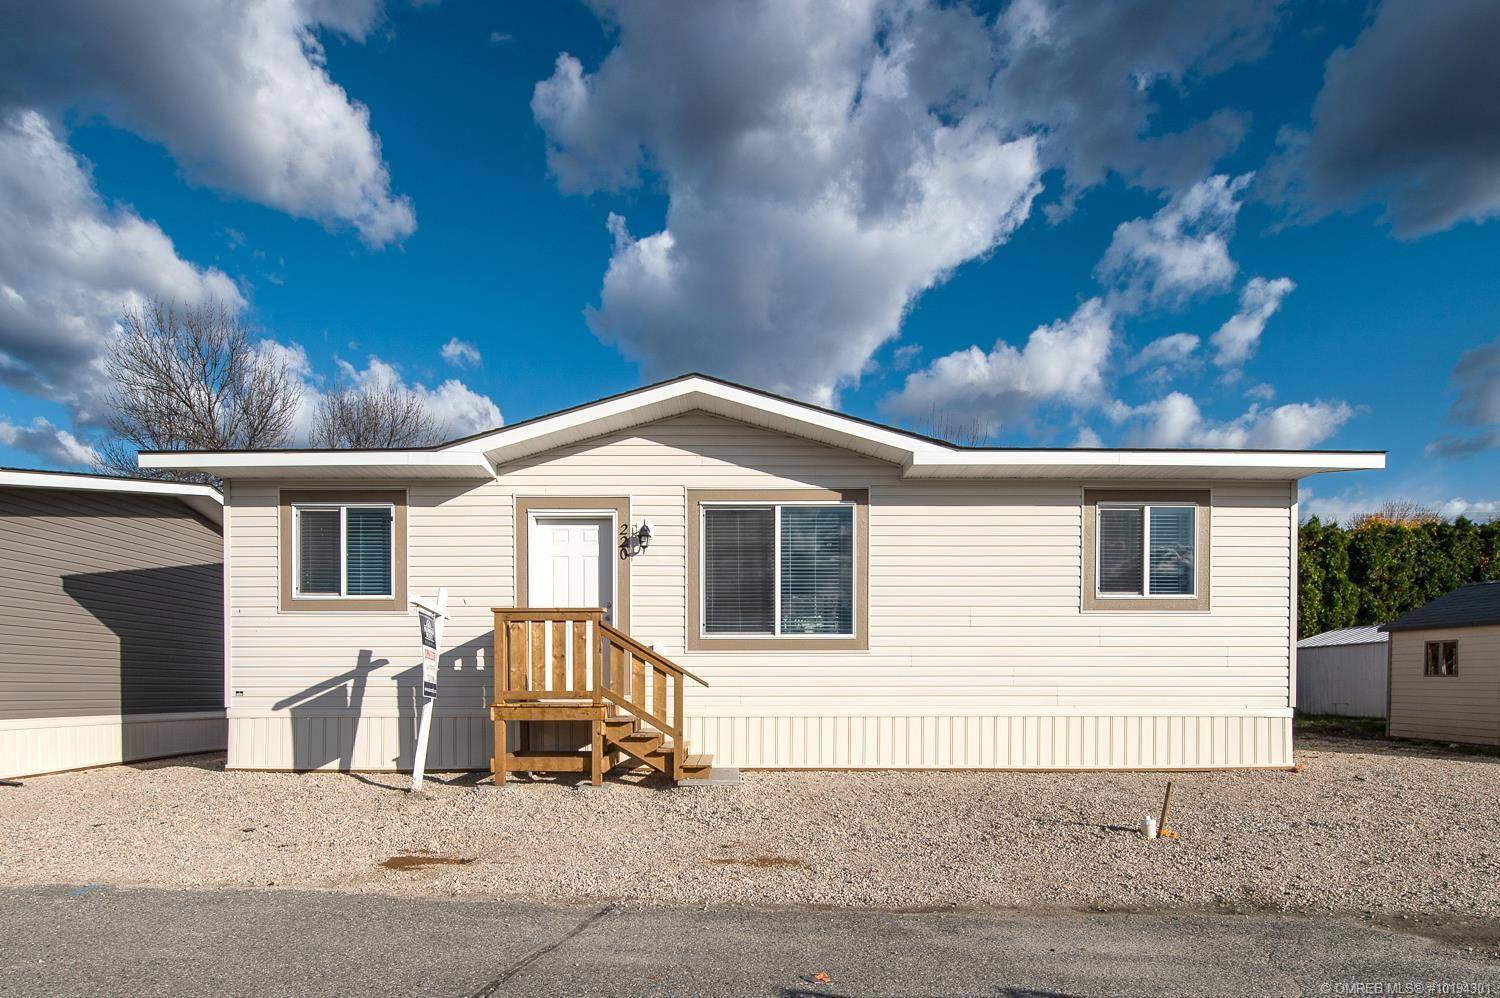 Home for sale at 3591 Old Vernon Rd Unit 220 Kelowna British Columbia - MLS: 10194301